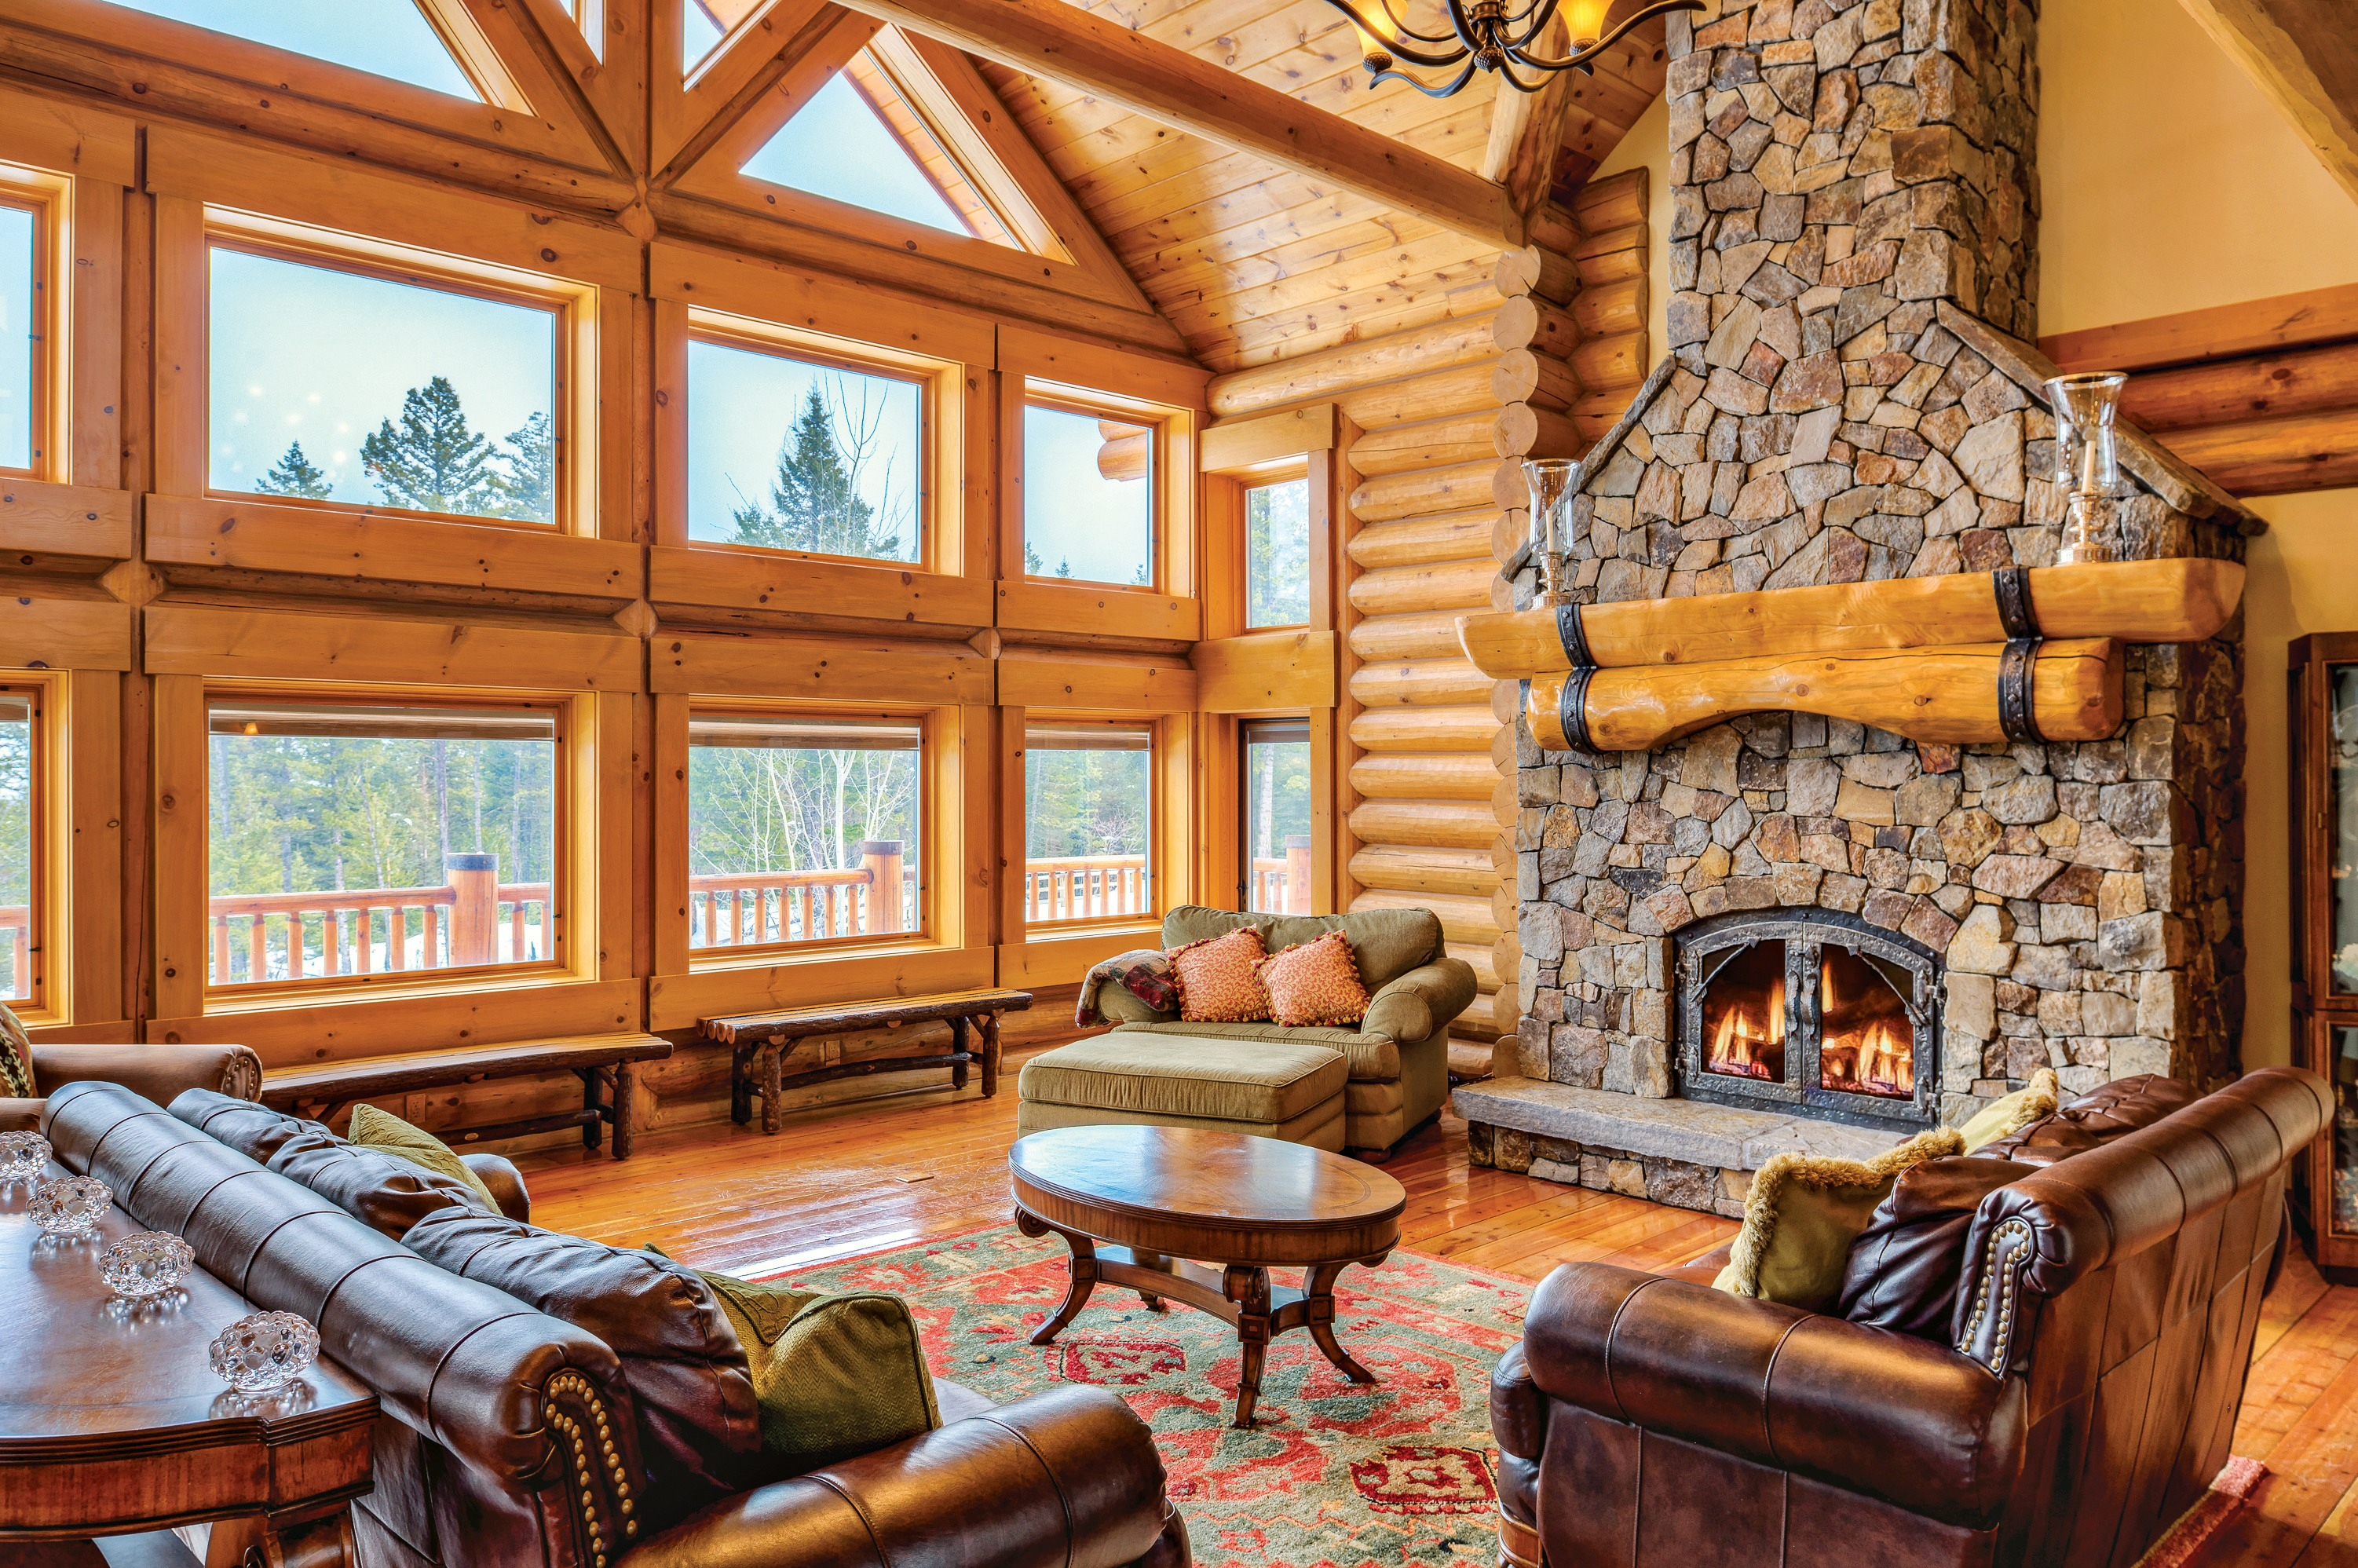 Kalispell Luxury Mountain Retreat Will Sell To Highest Bidder At May 27th AuctionOwners Of Big Sky Montana Equestrian Estate Select Grand Estates Auction